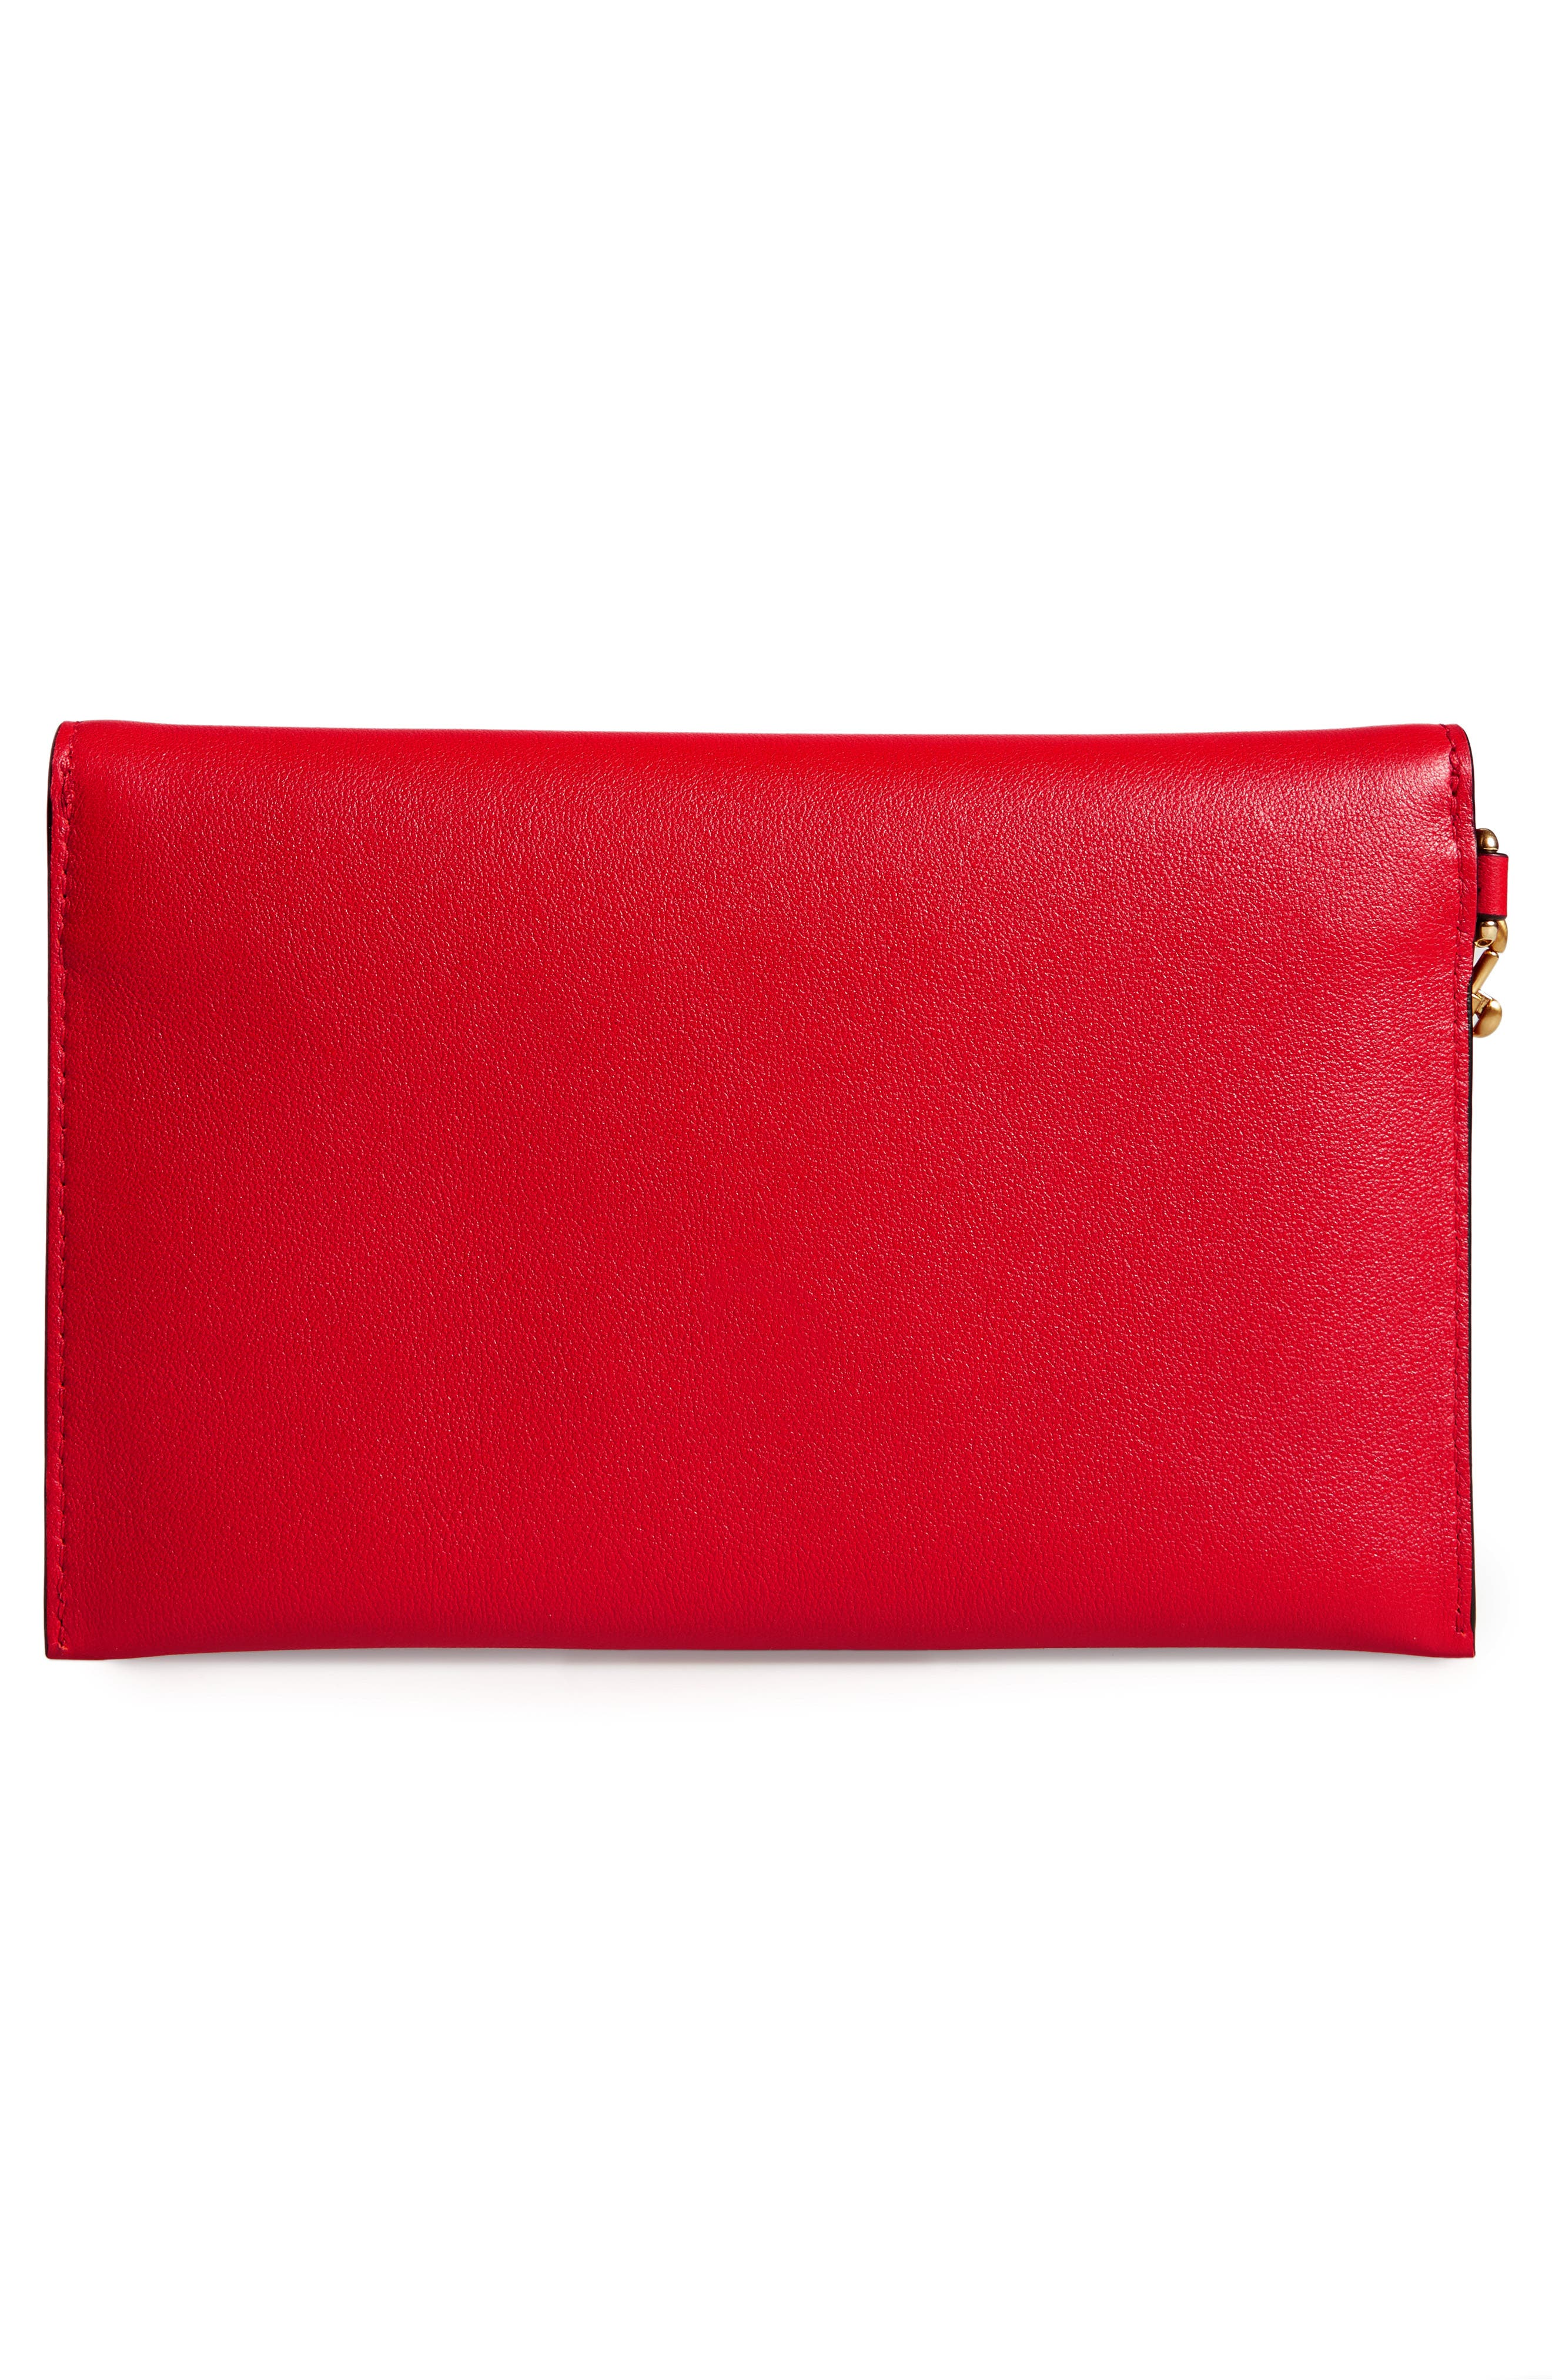 MOSCHINO, Bear Faux Leather Wristlet, Alternate thumbnail 3, color, RED